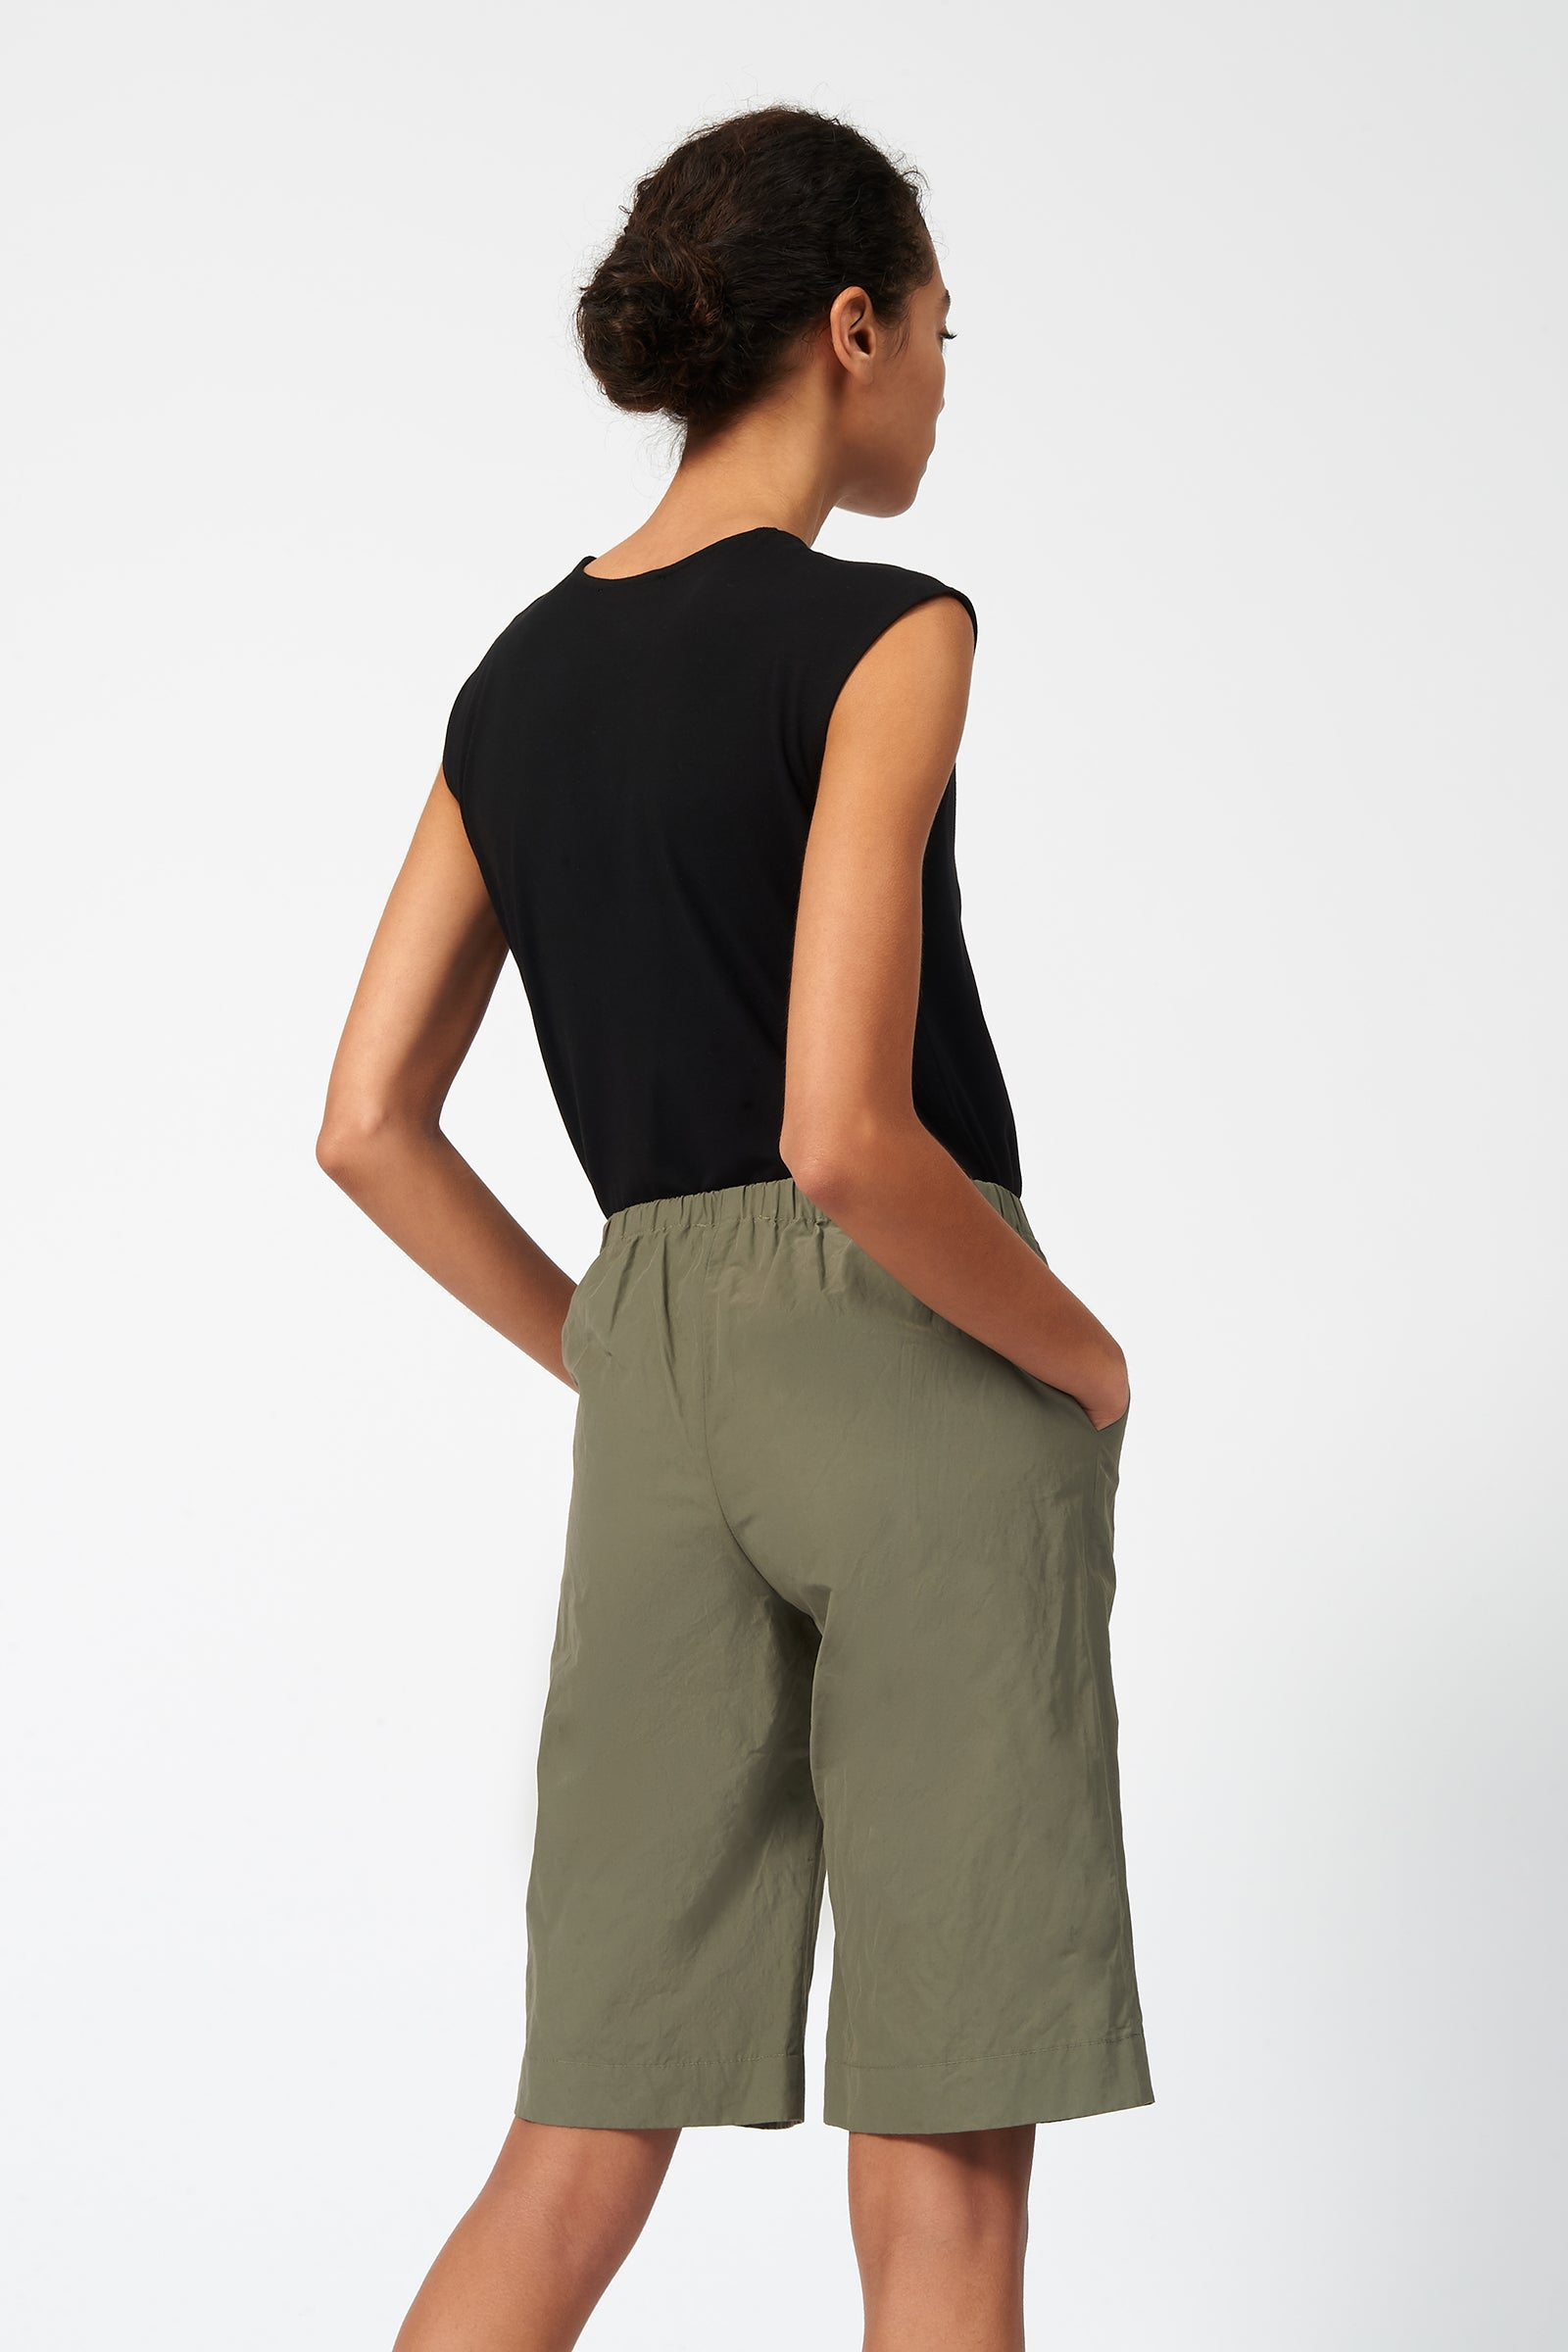 Kal Rieman Cotton Nylon Bermuda in Olive on Model Back View